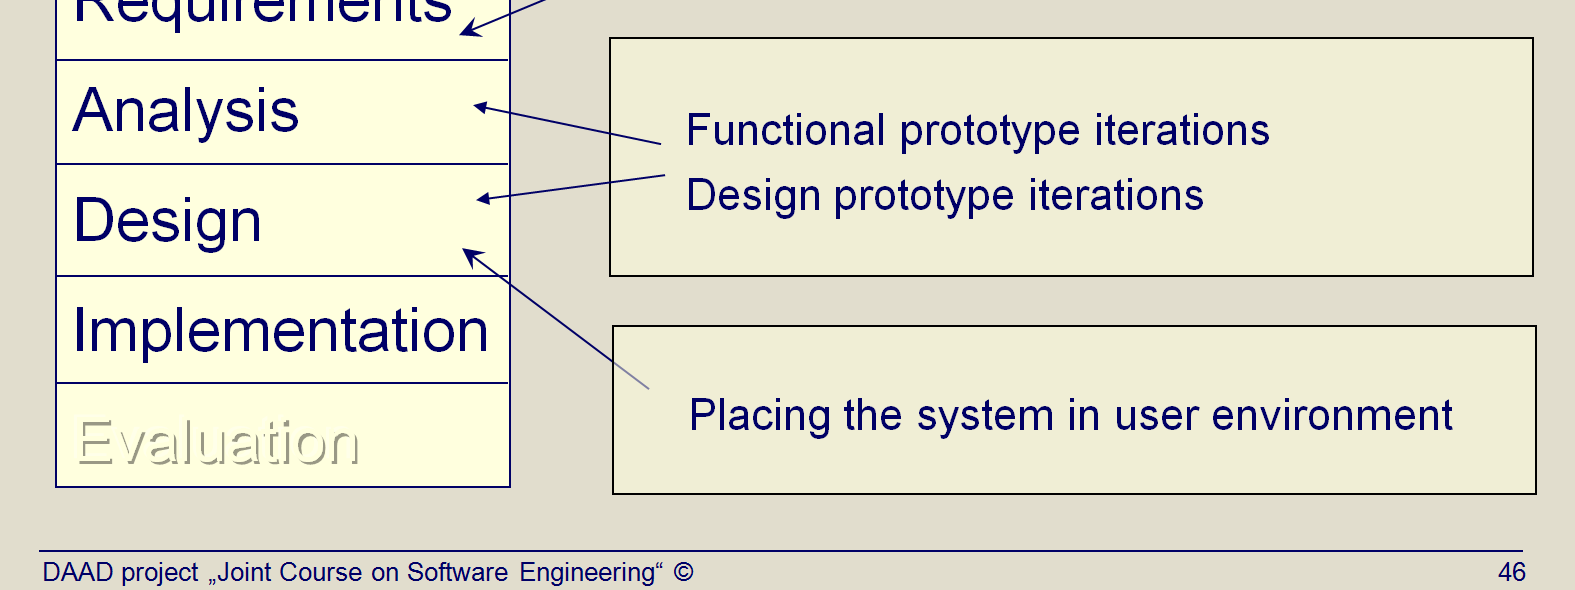 Title: Dynamic Systems Development Method (DSDM) (Topic03 Slide 36). Flexible methods of project development based upon iterative prototyping are known as RAD (Rapid Application Development).